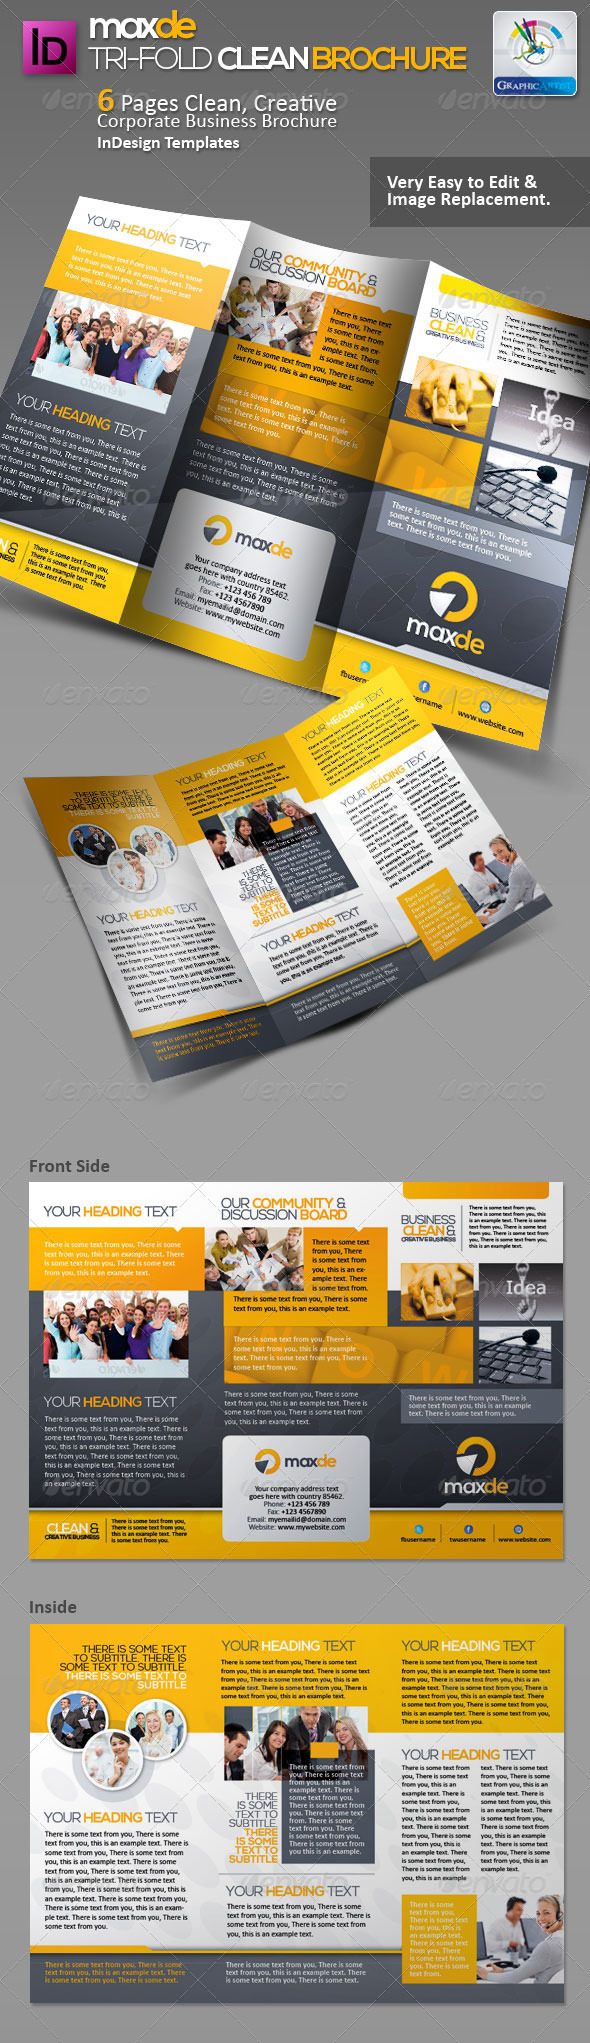 GraphicRiver Maxde Tri-fold Clean Brochure 3061403